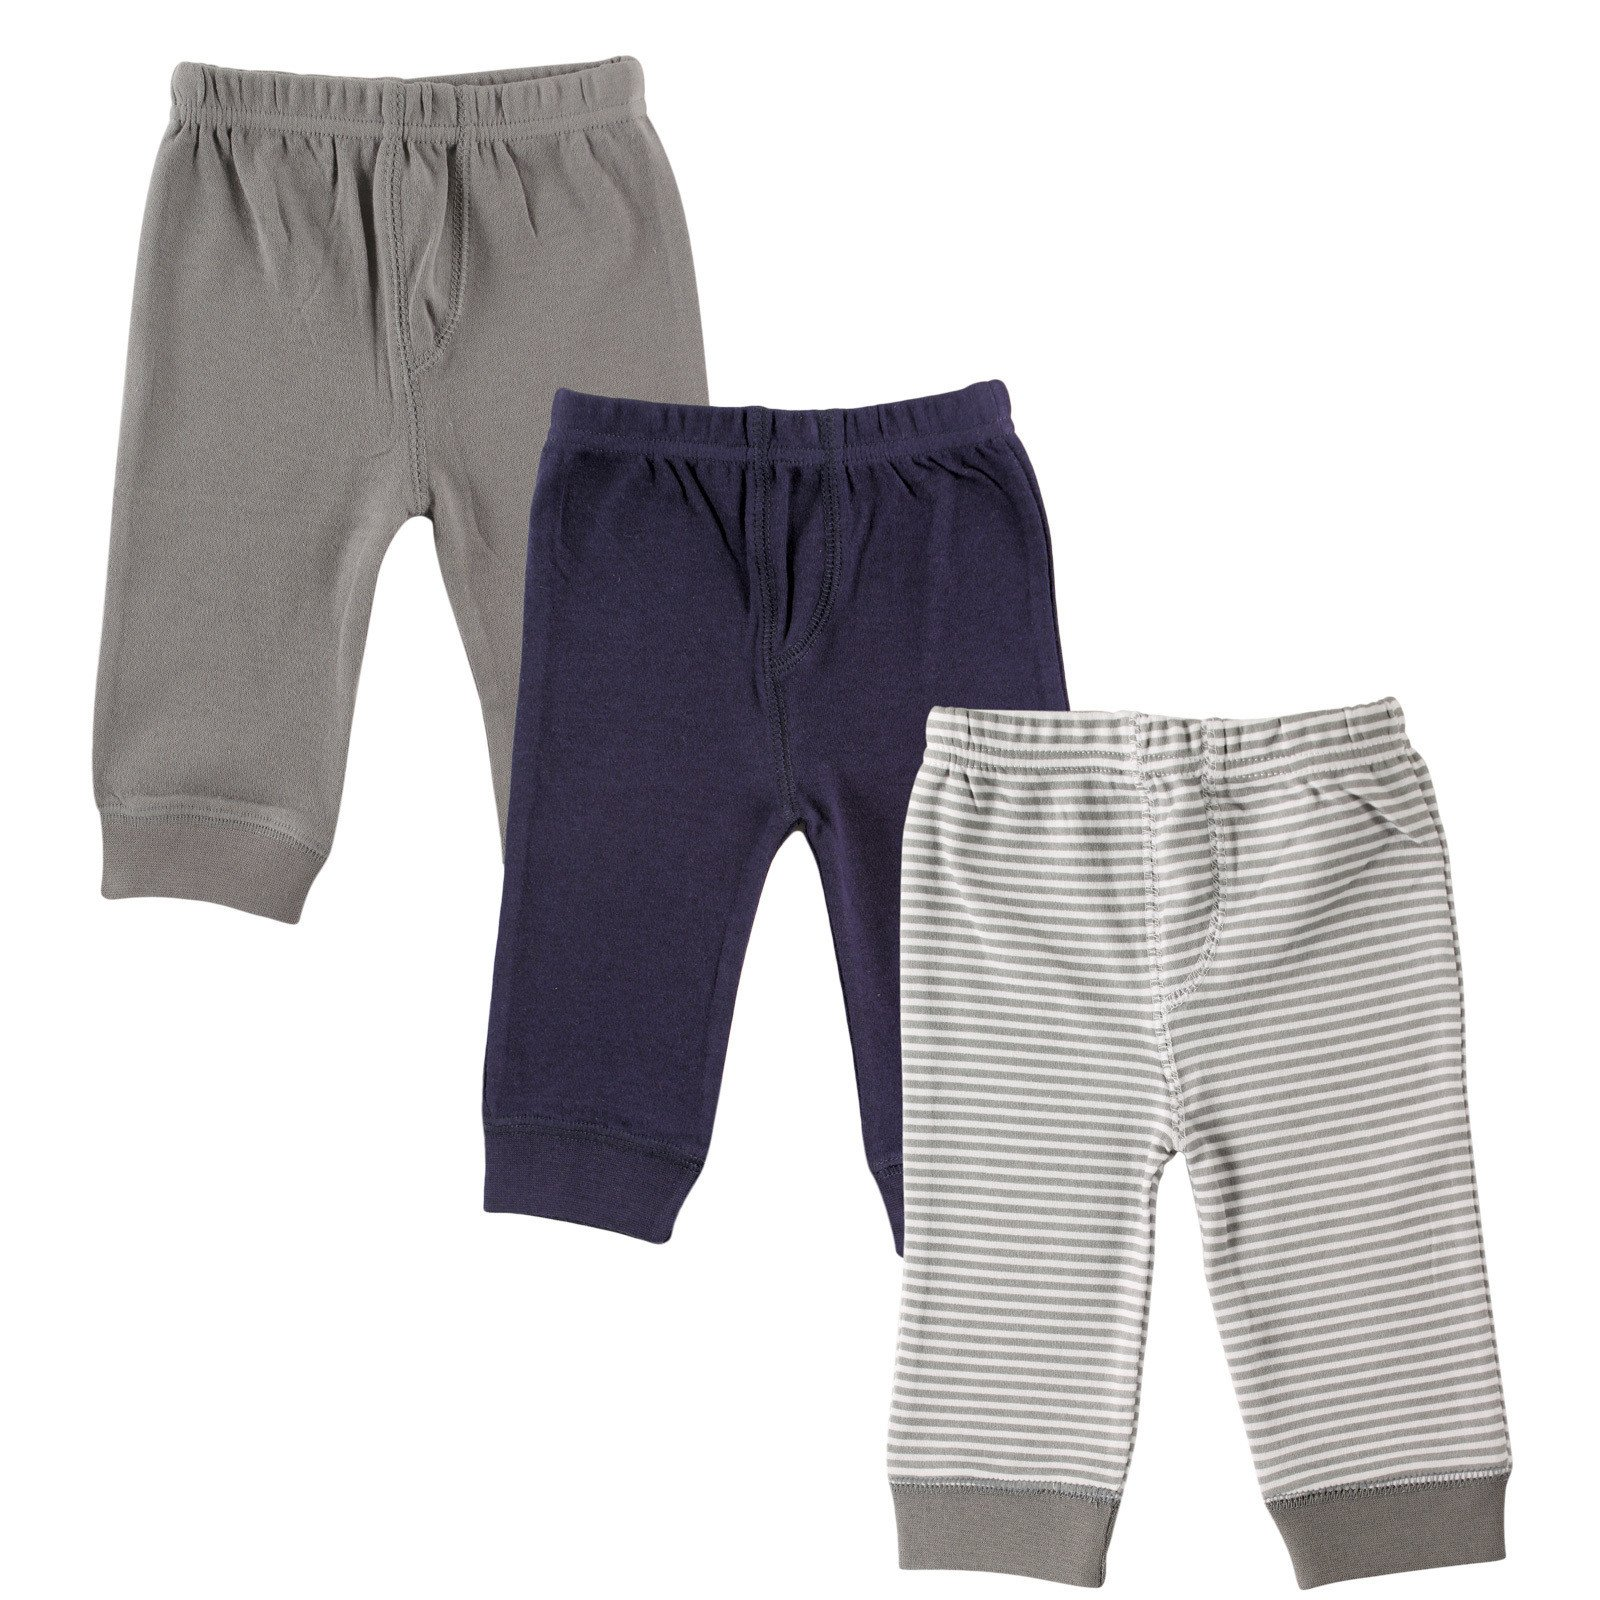 Luvable Friends Baby 3 Pack Tapered Ankle Pants, Grey Stripe, 4T